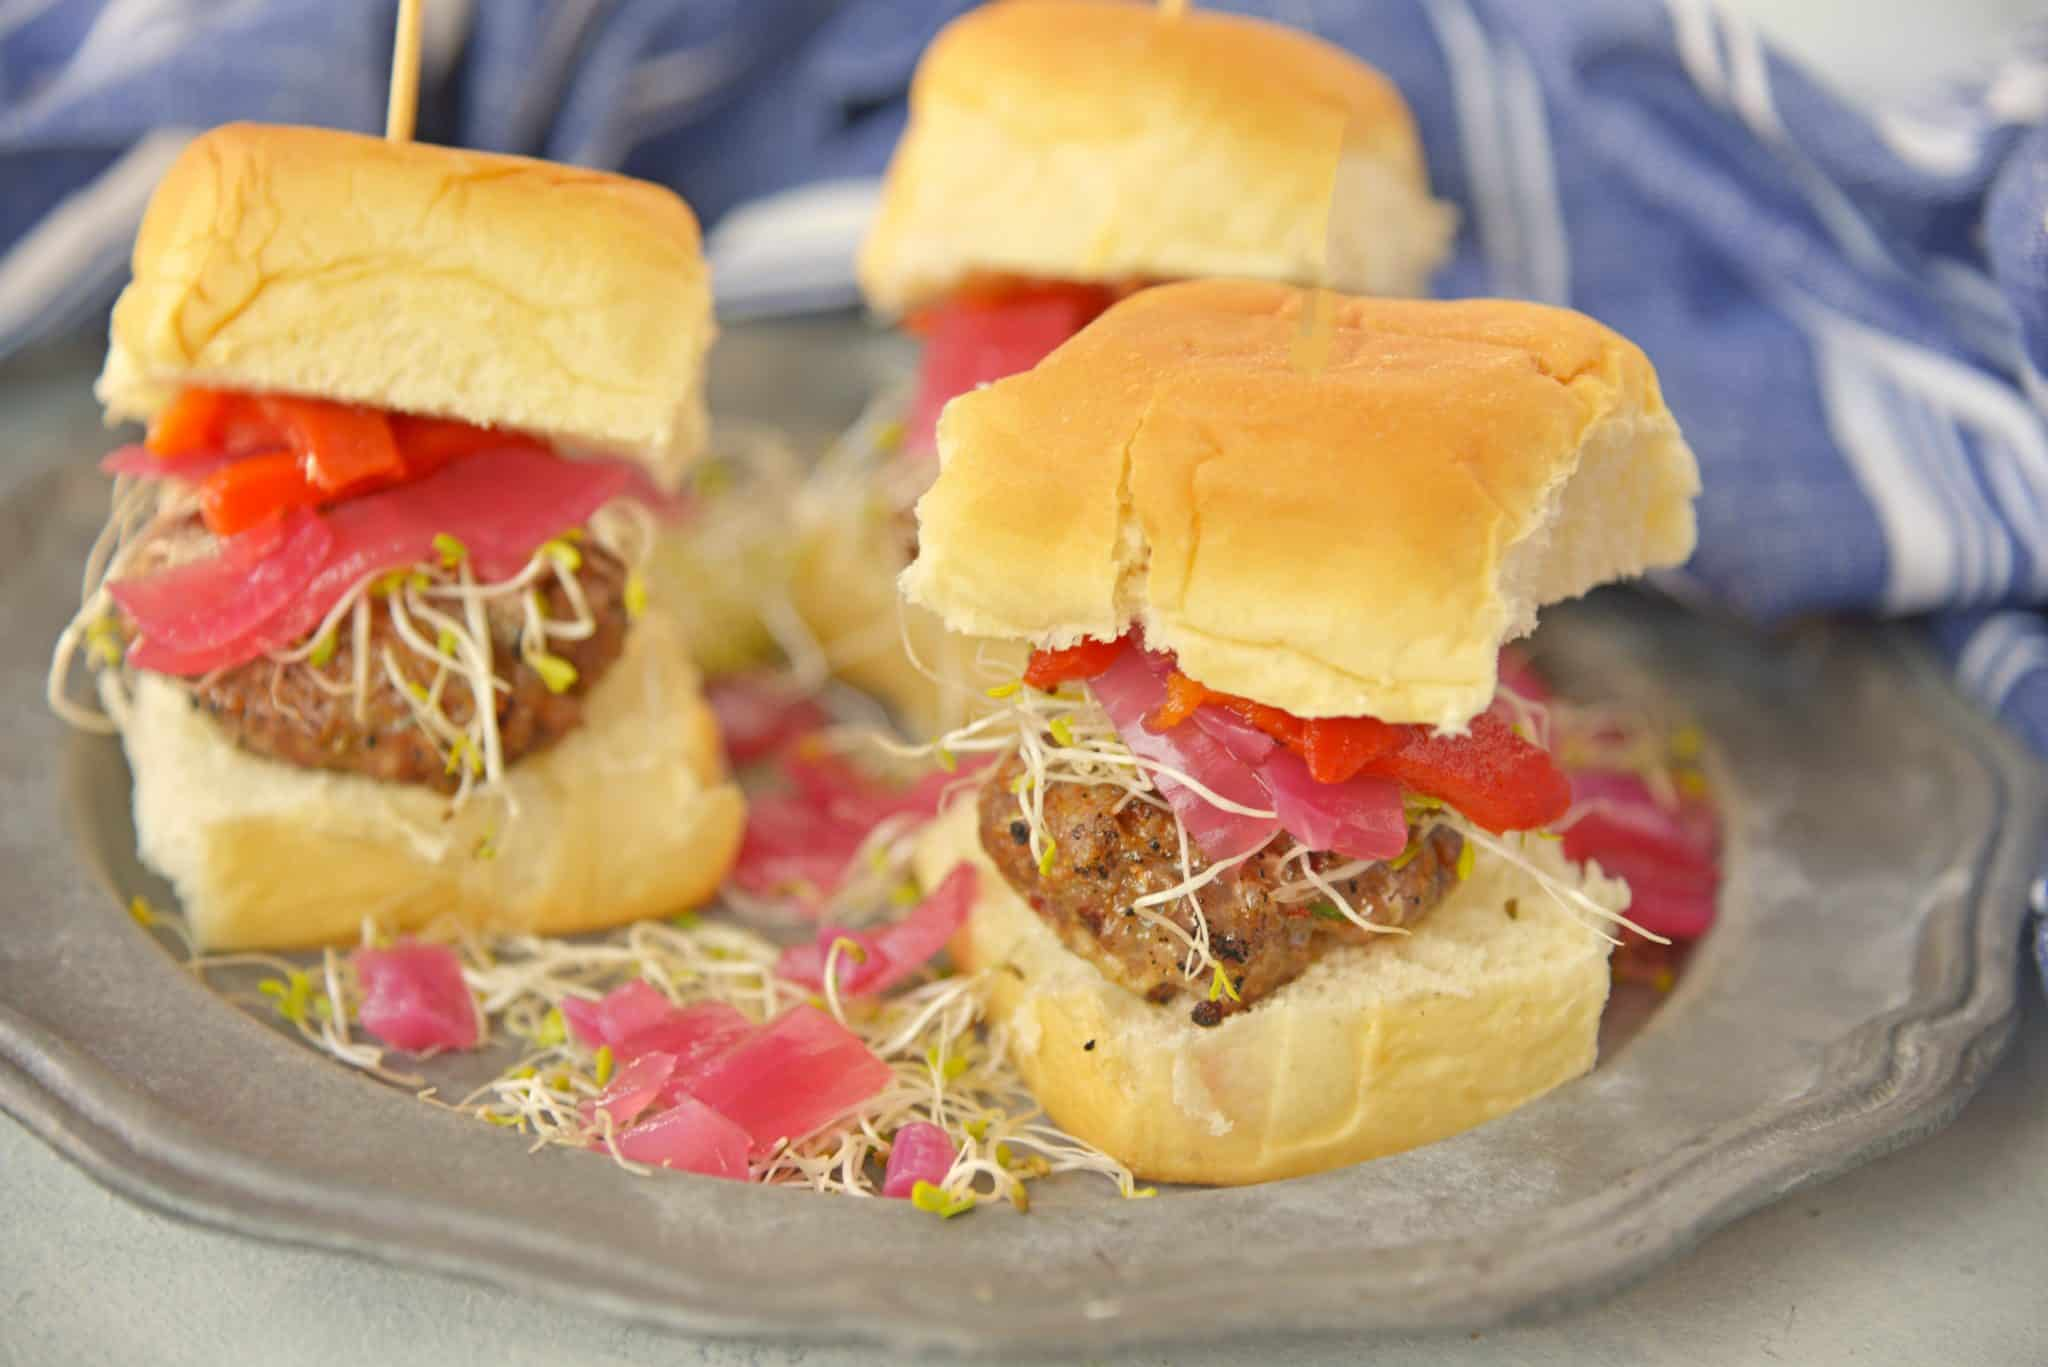 These Italian Sausage Sandwich Sliders are easy to prepare and even easier to eat. Featuring pork sausage and Hawaiian rolls,they are sure to impress.